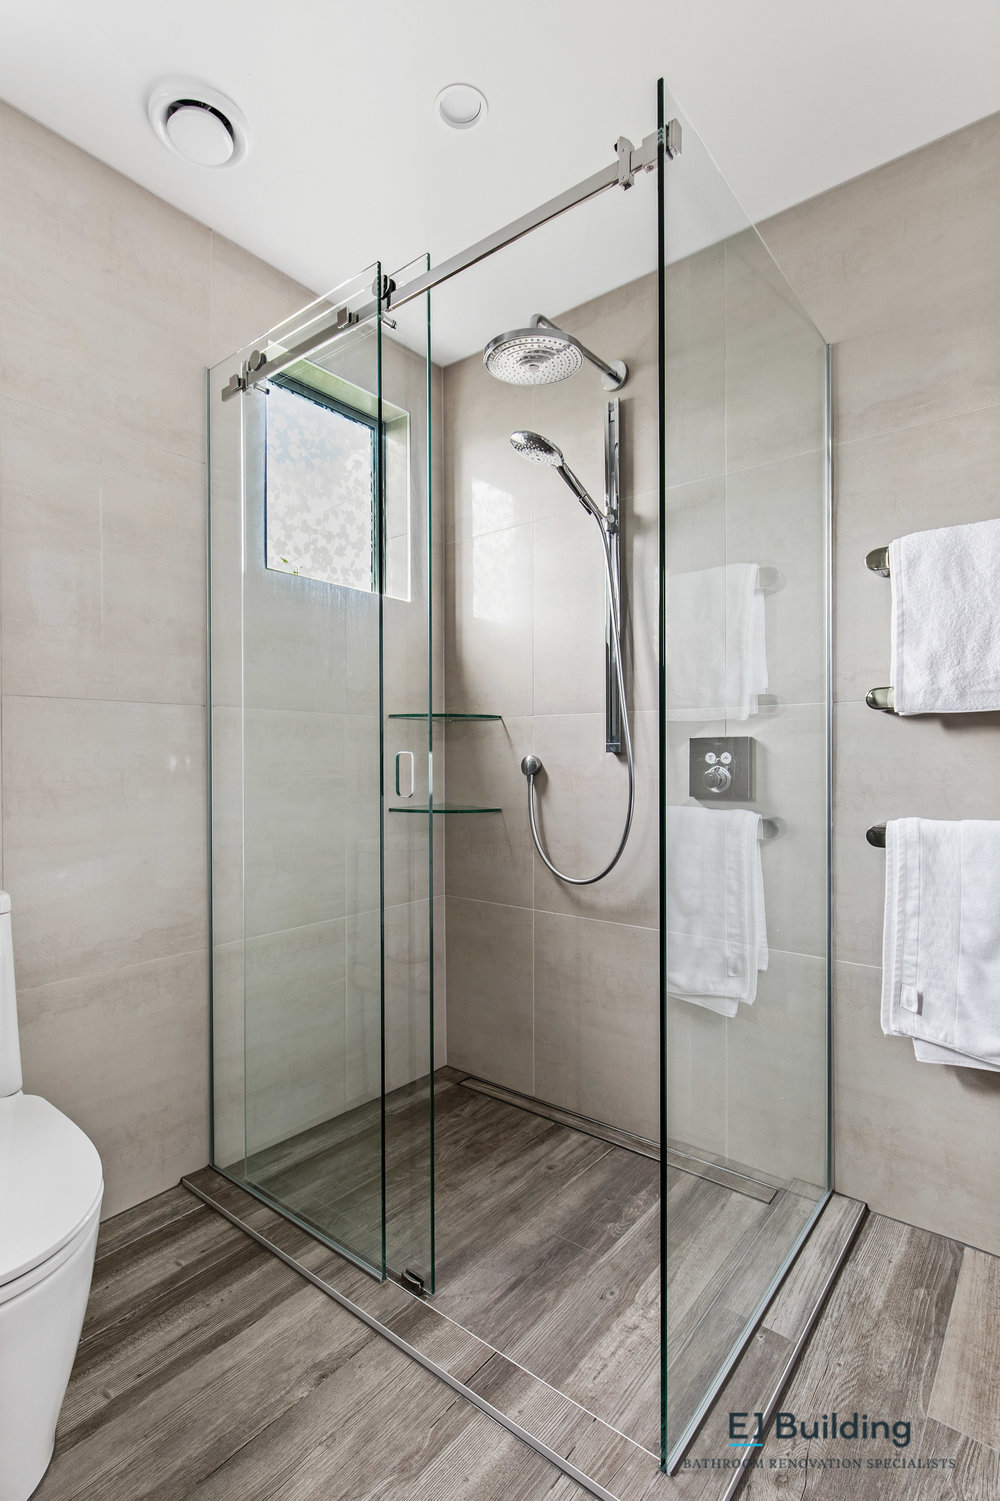 Interior designed bathroom in Auckland, showing tiled wet floor shower with custom frameless glass shower.